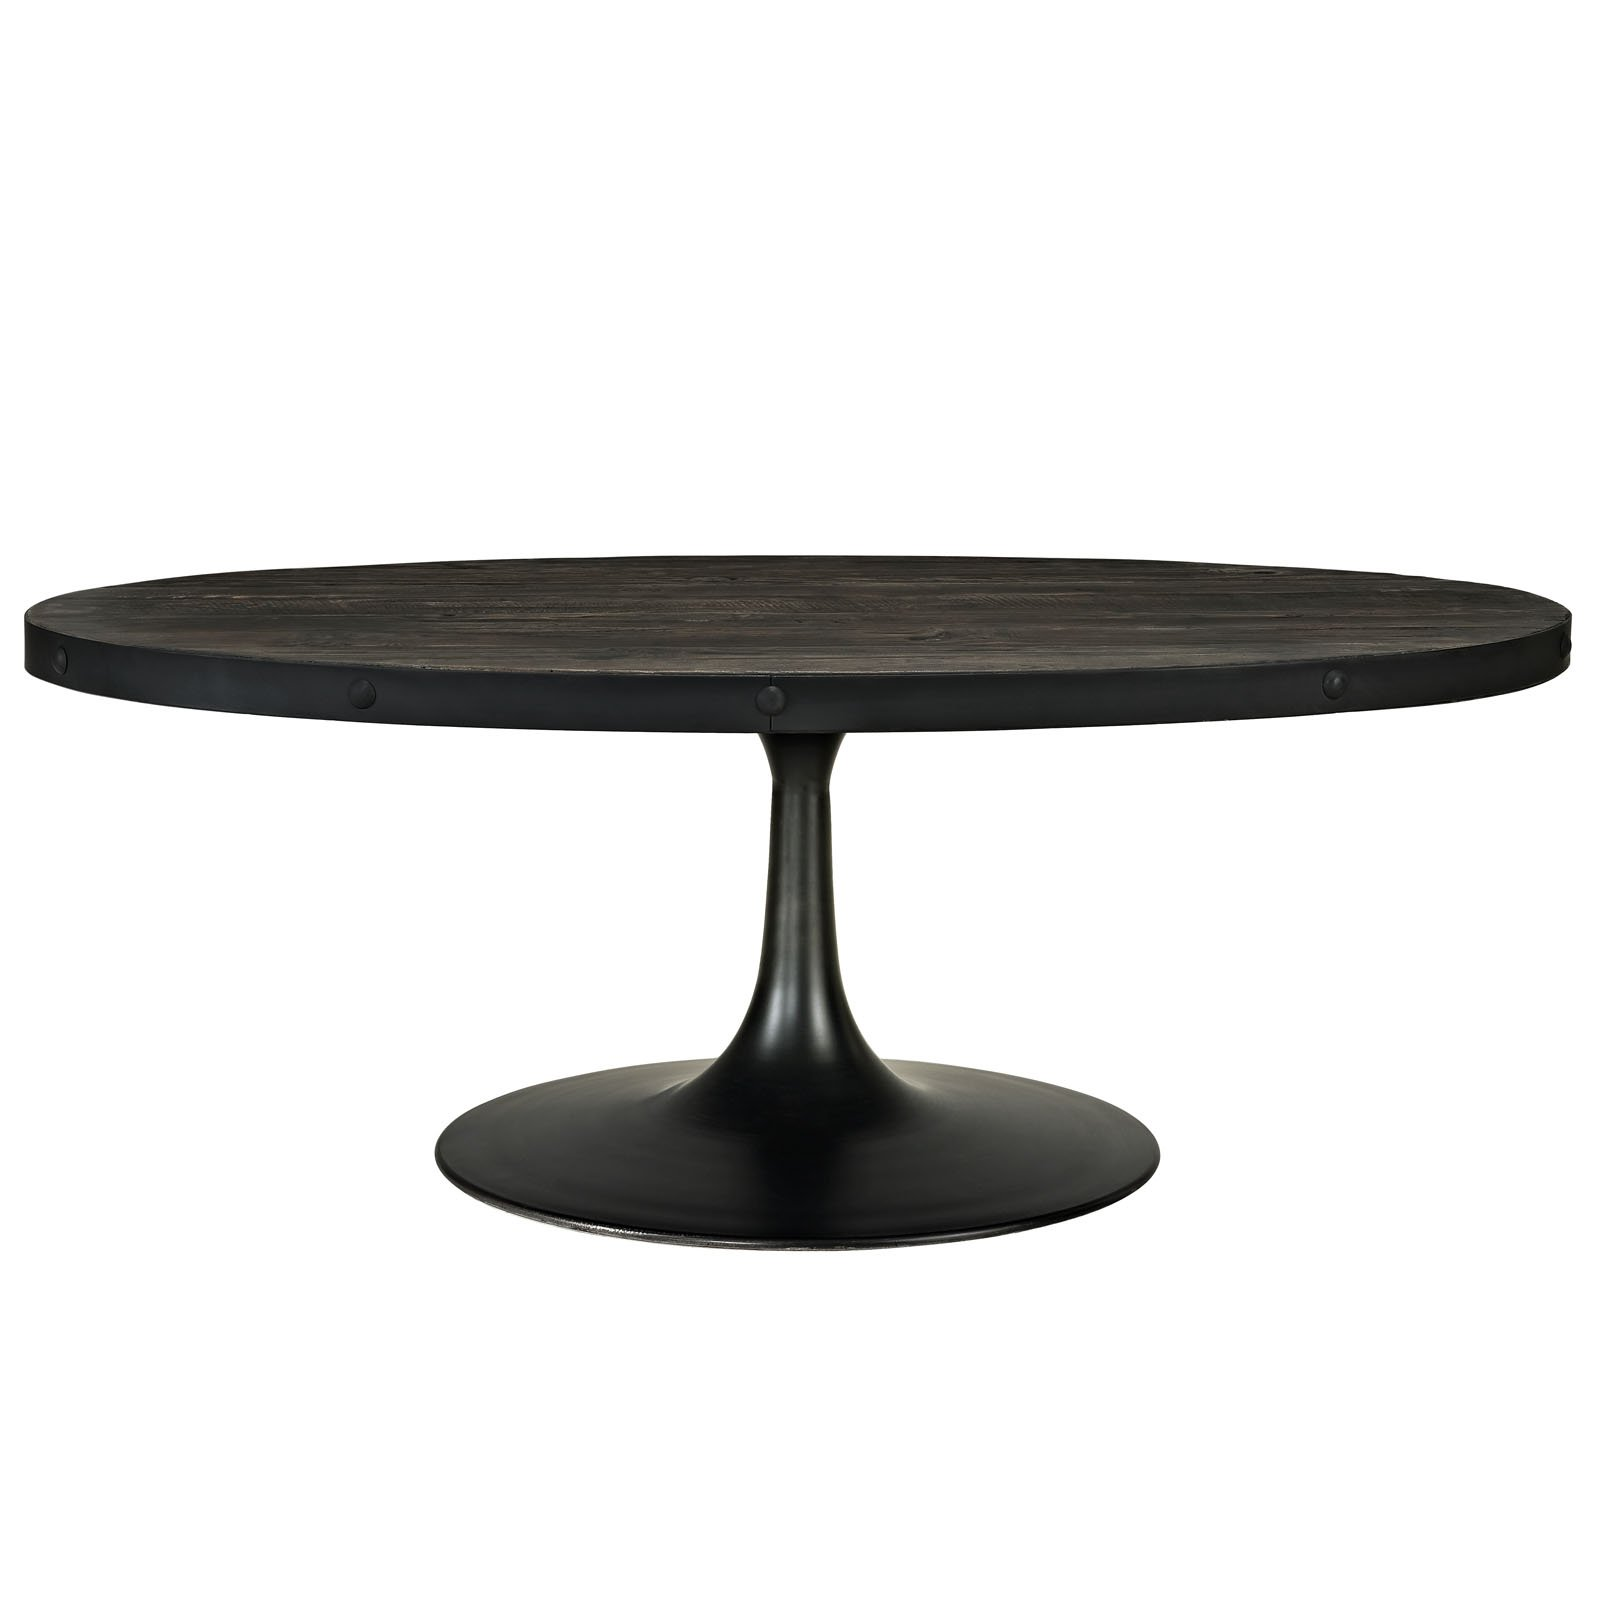 Modway Drive Wood Top Coffee Table in Black